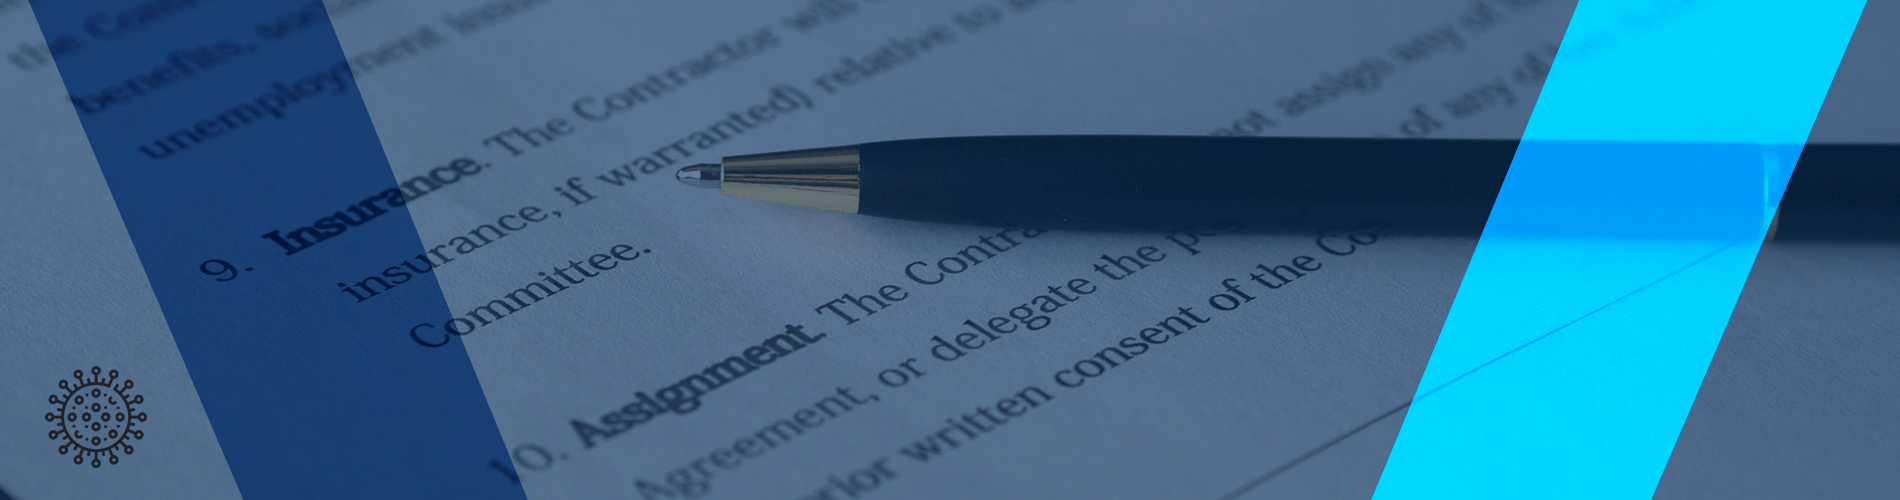 Contracts during the corona pandemic